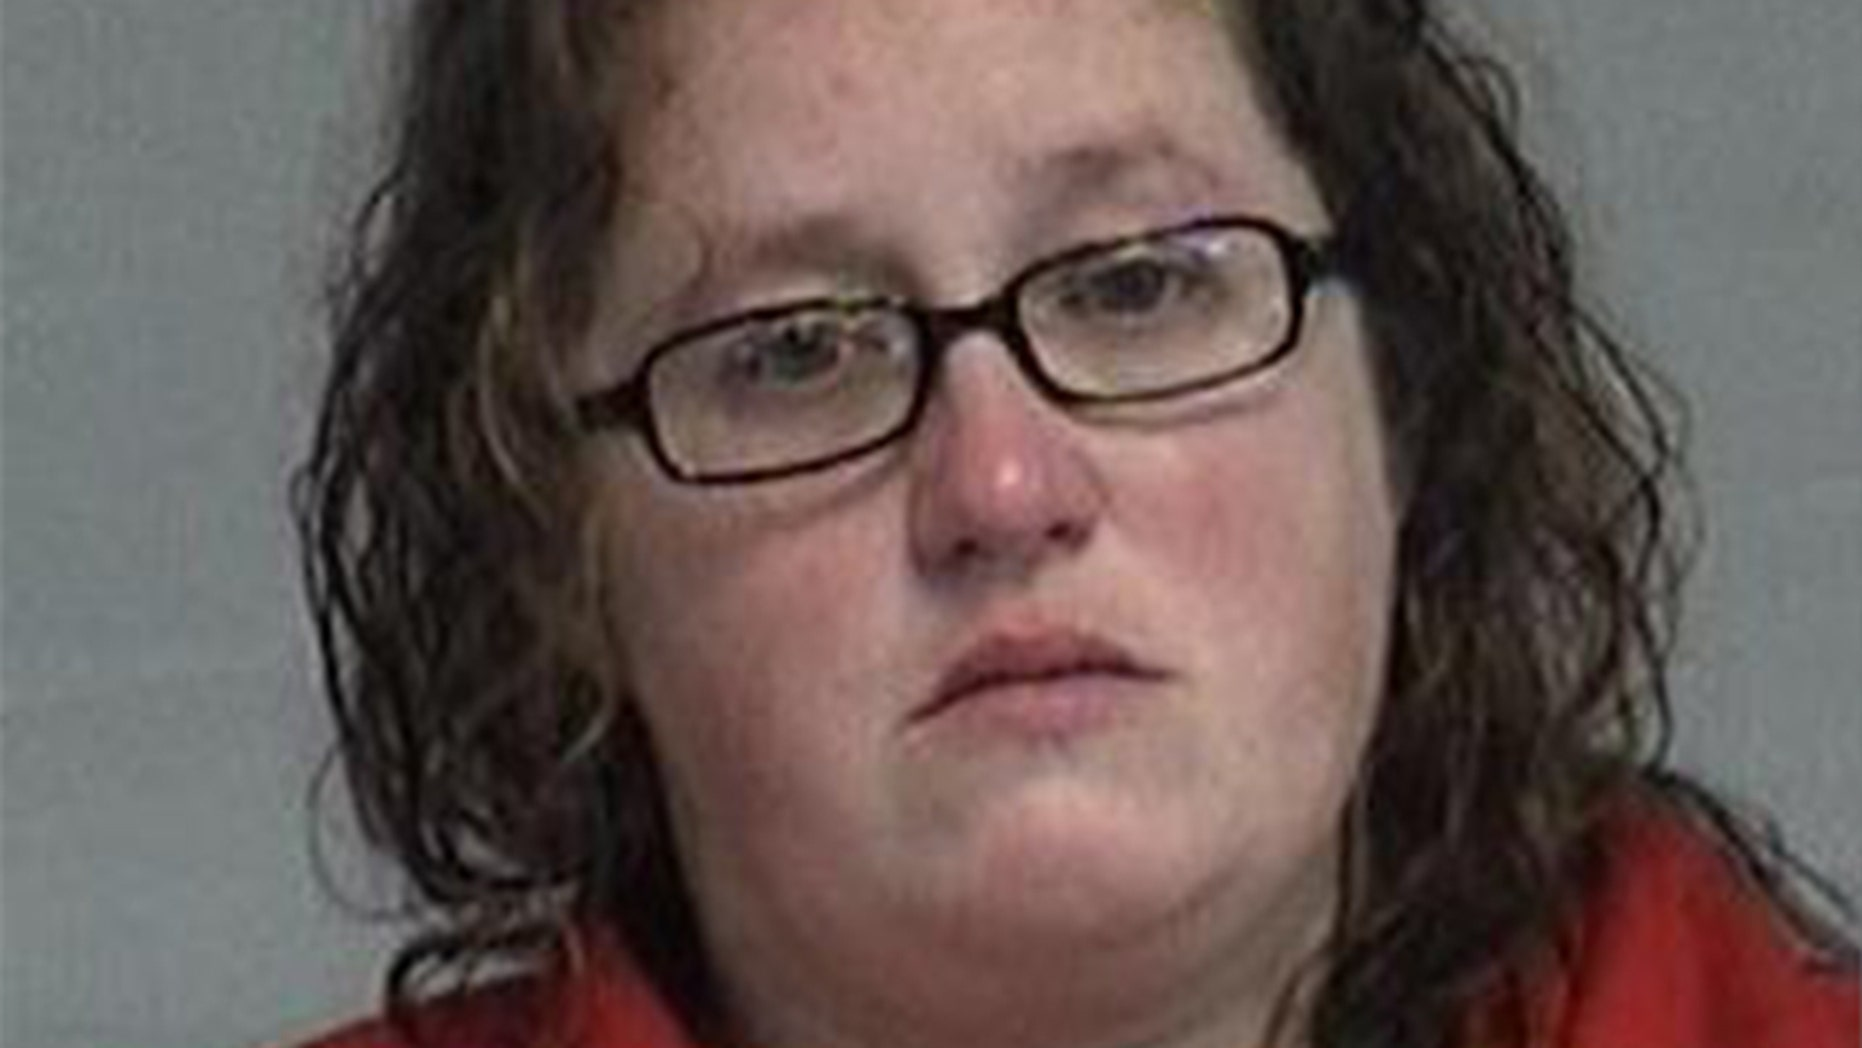 Christina Marie Maddox is accused of threatening to blow up Yulee Elementary School.